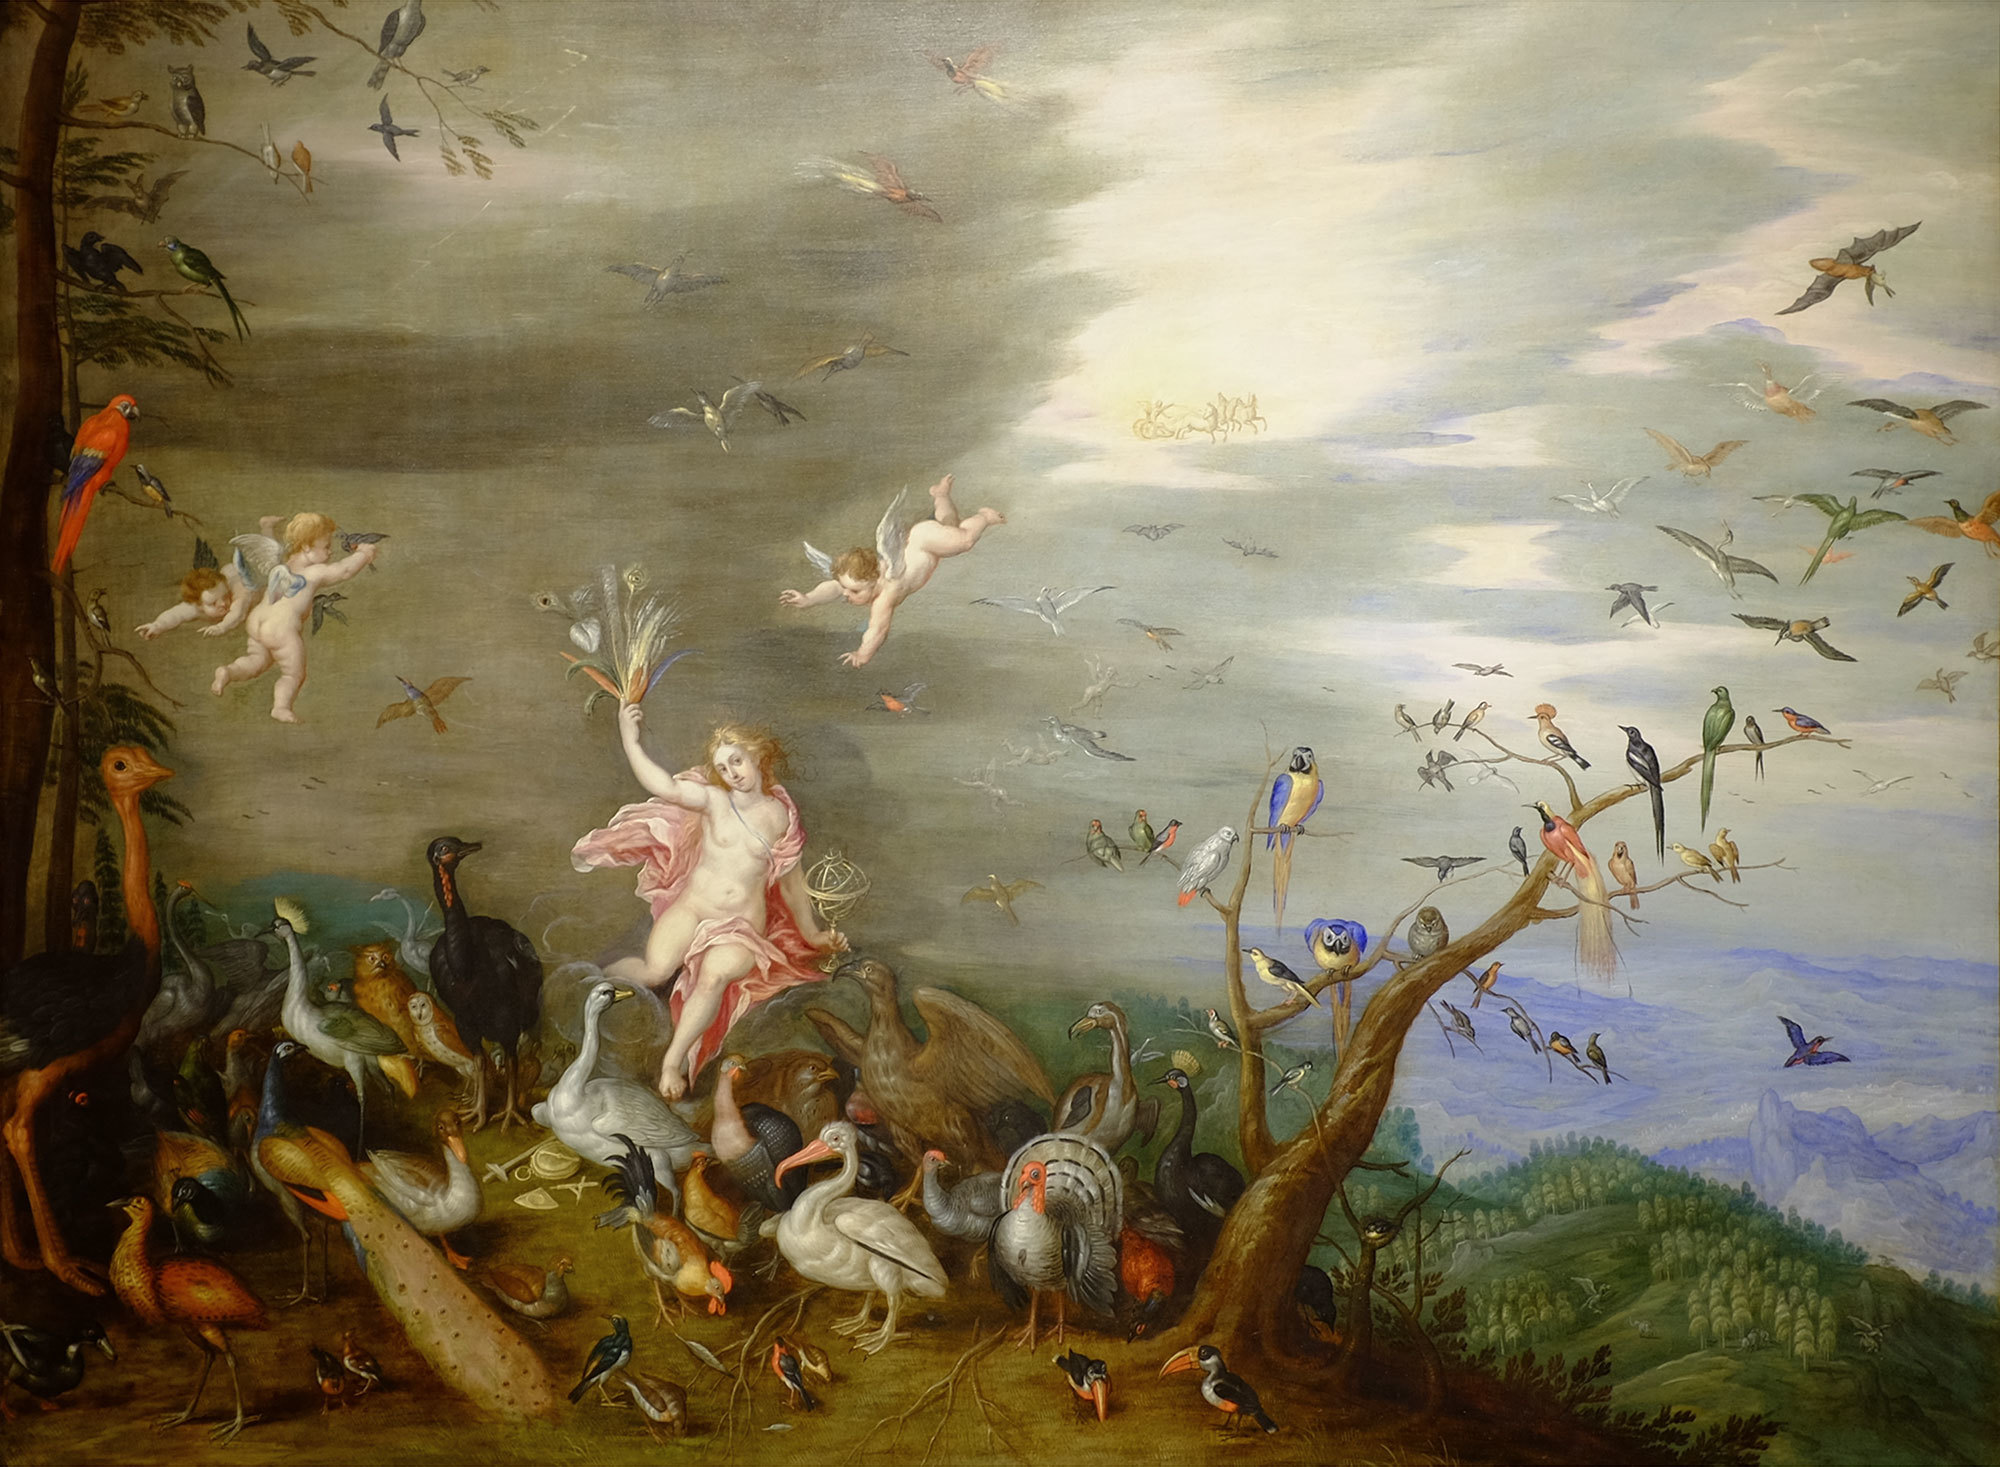 Jan van Kessel, Flemish, 1626 - 1679. Air, ca. 1647. Oil on copper, 30 × 39 in. (76.2 × 99.1 cm). Gift of Mr. and Mrs. William L. Richards through the Viola E. Bray Charitable Trust Fund, 1965.33